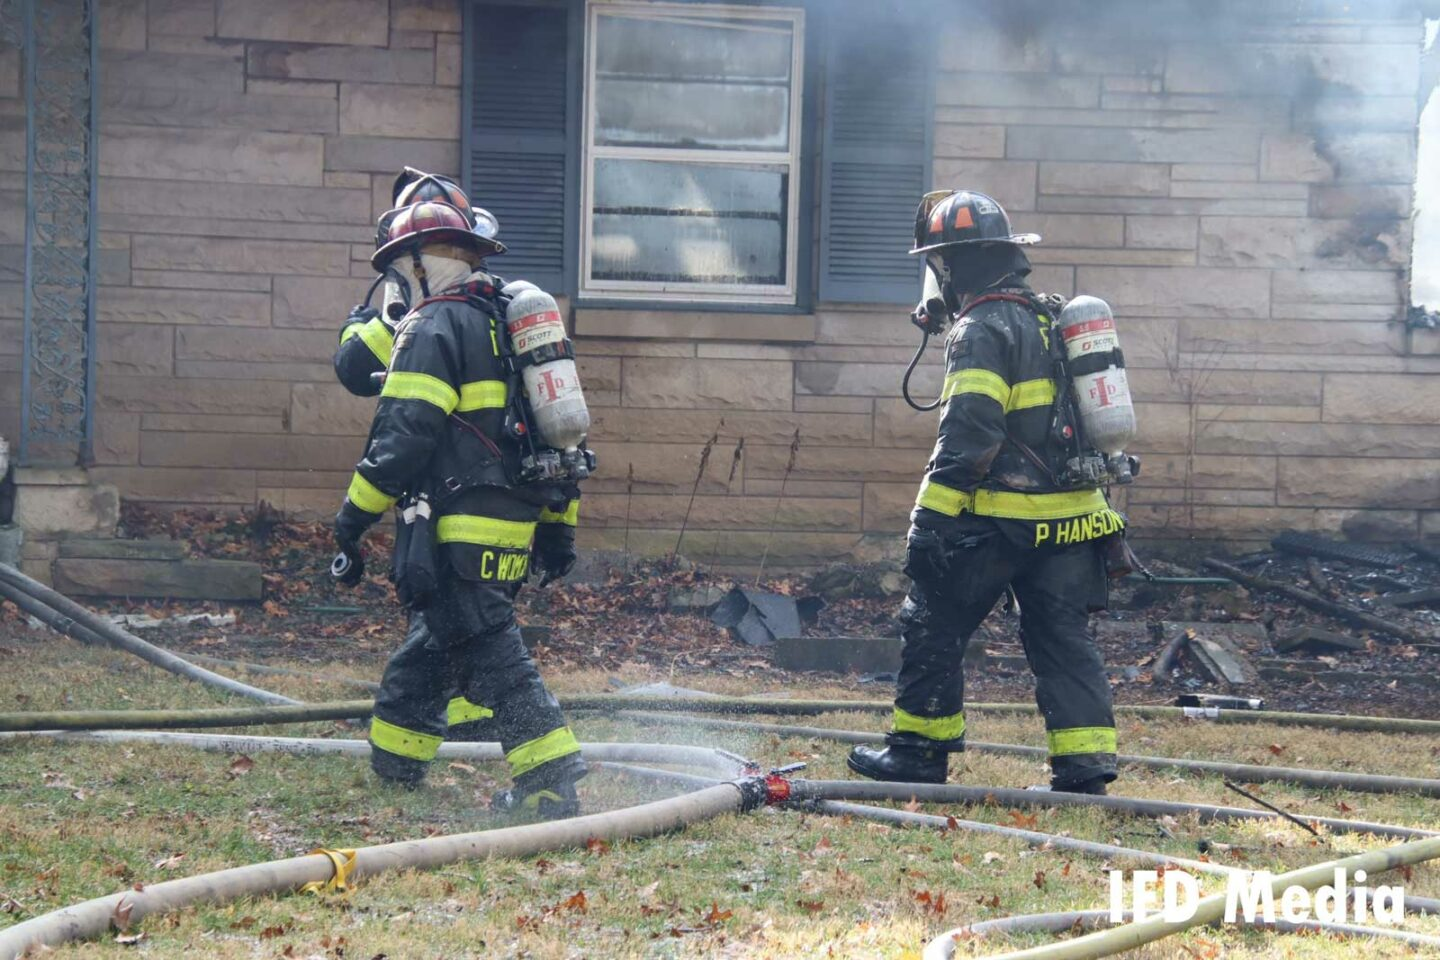 Firefighters with hoselines on scene